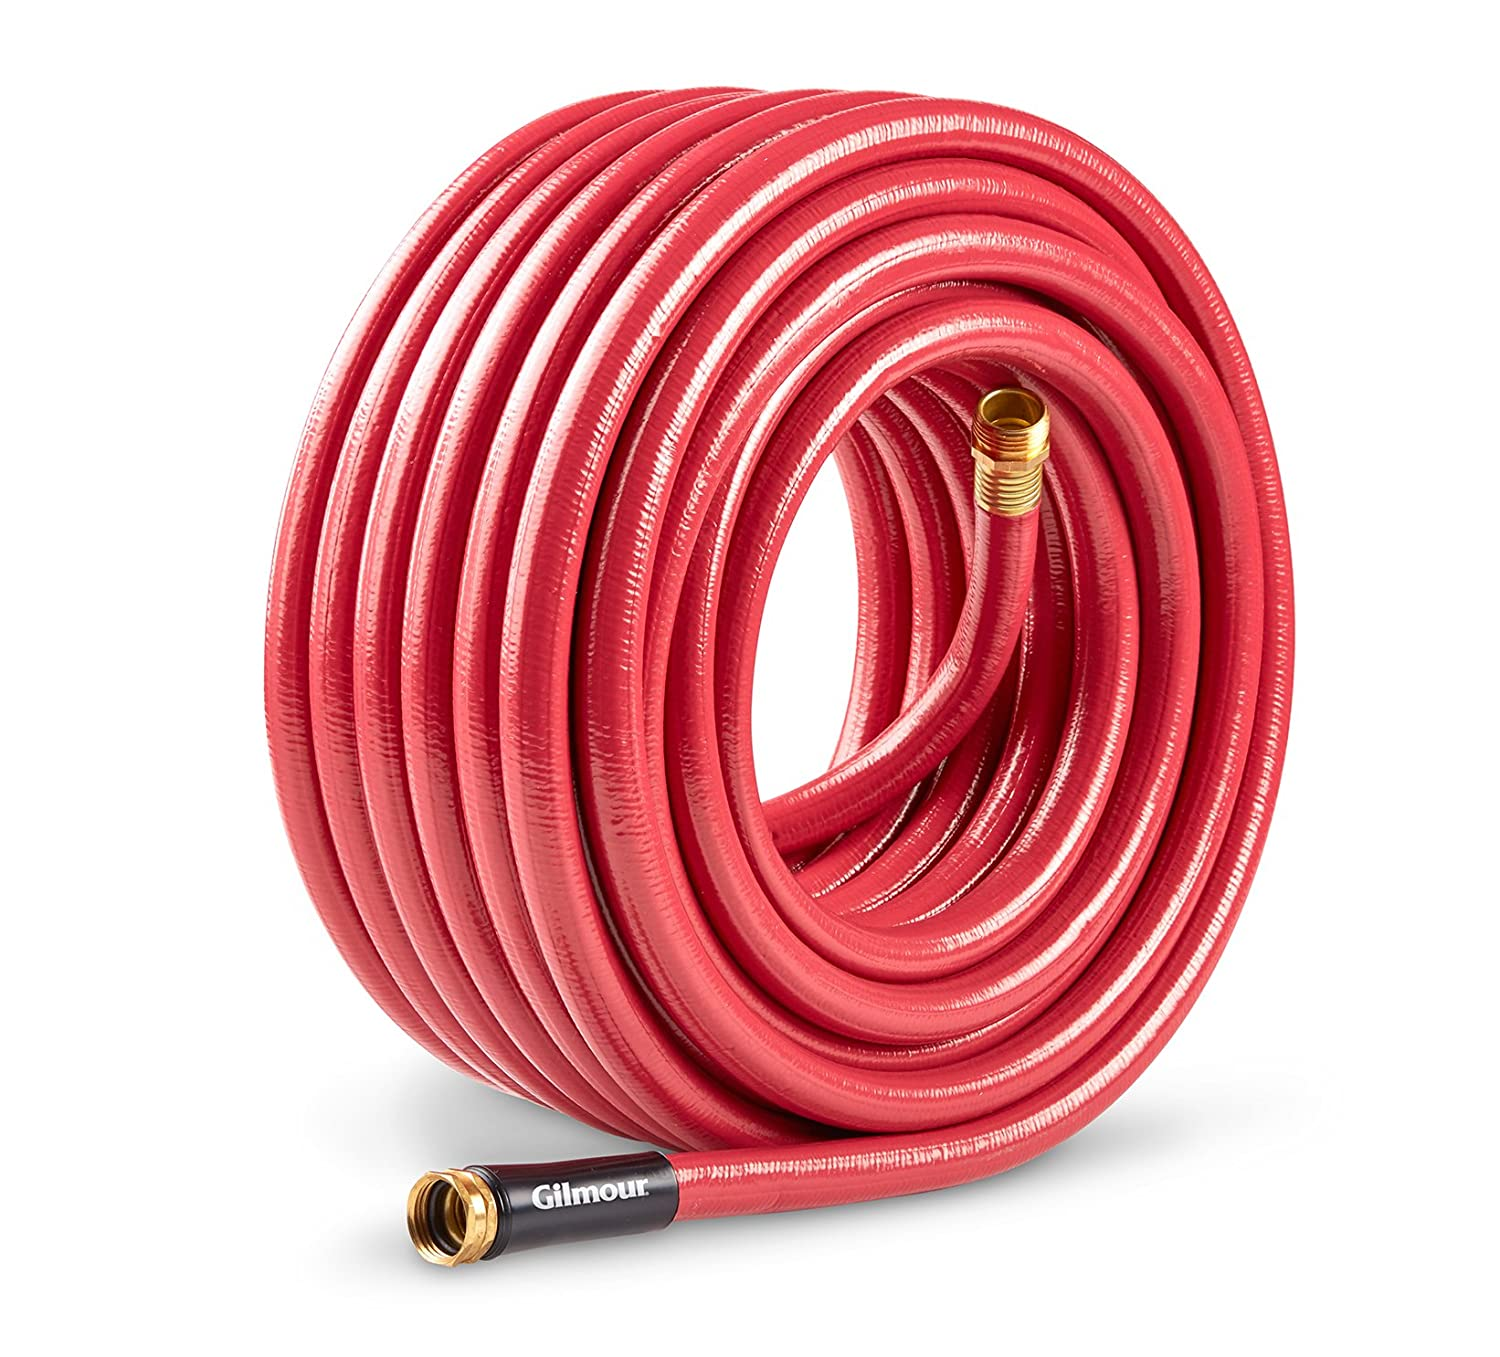 Gilmour 829901-1001 Farm & Ranch Hose 5/8 Inch x 90 Feet, Red